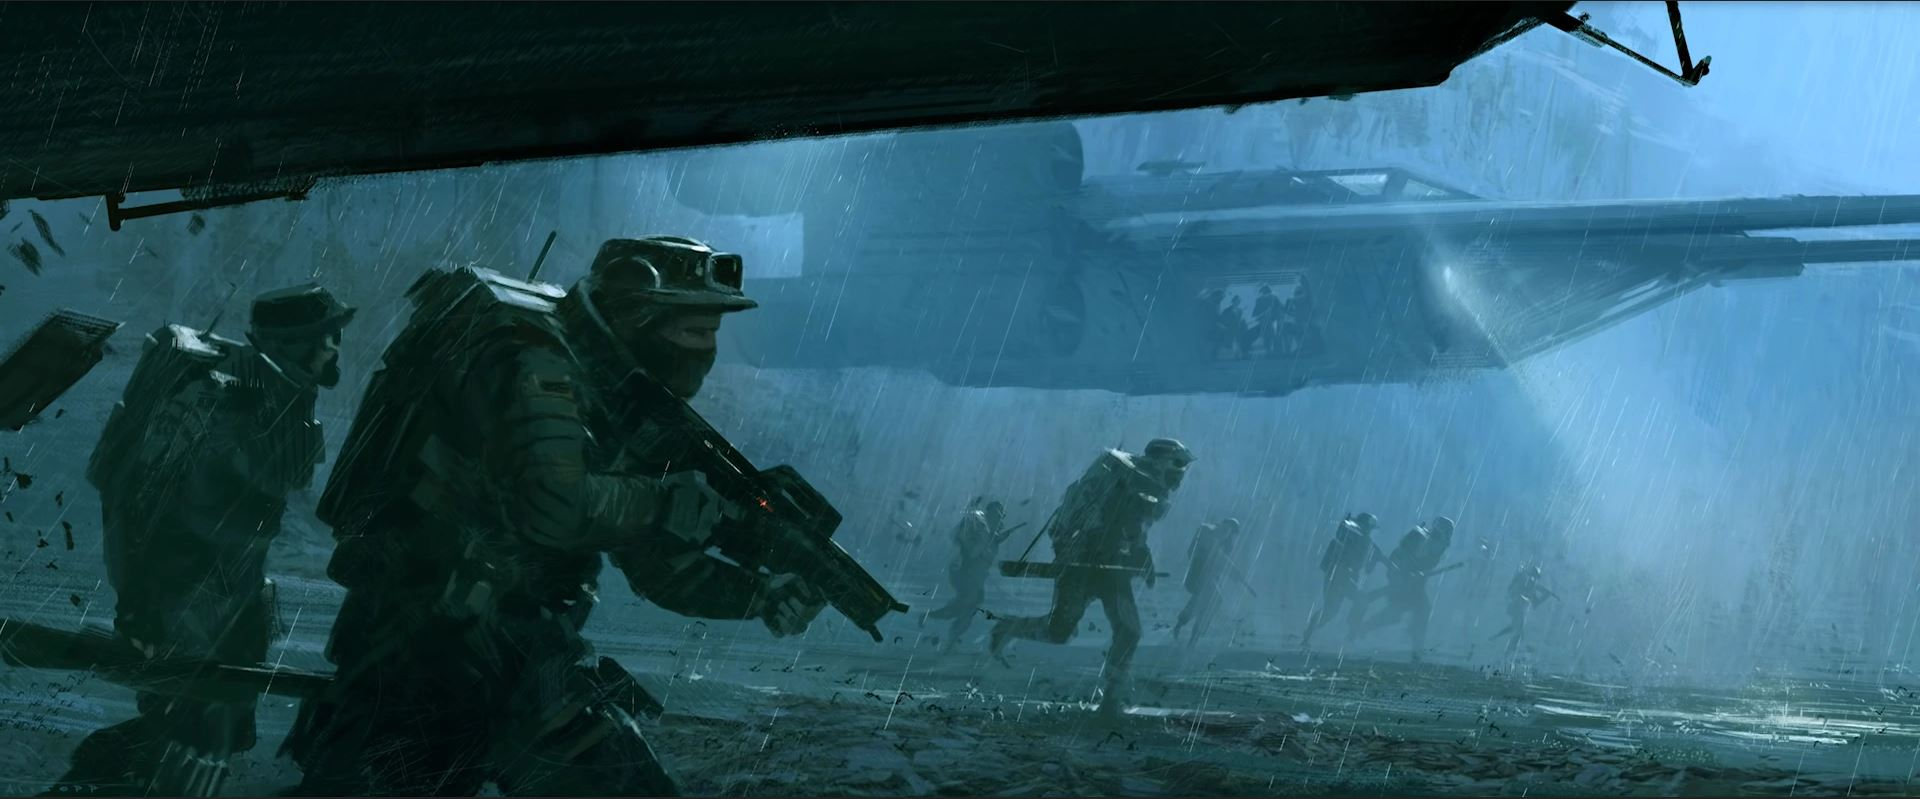 Rogue-One-Concept-Art-Celebration.jpg